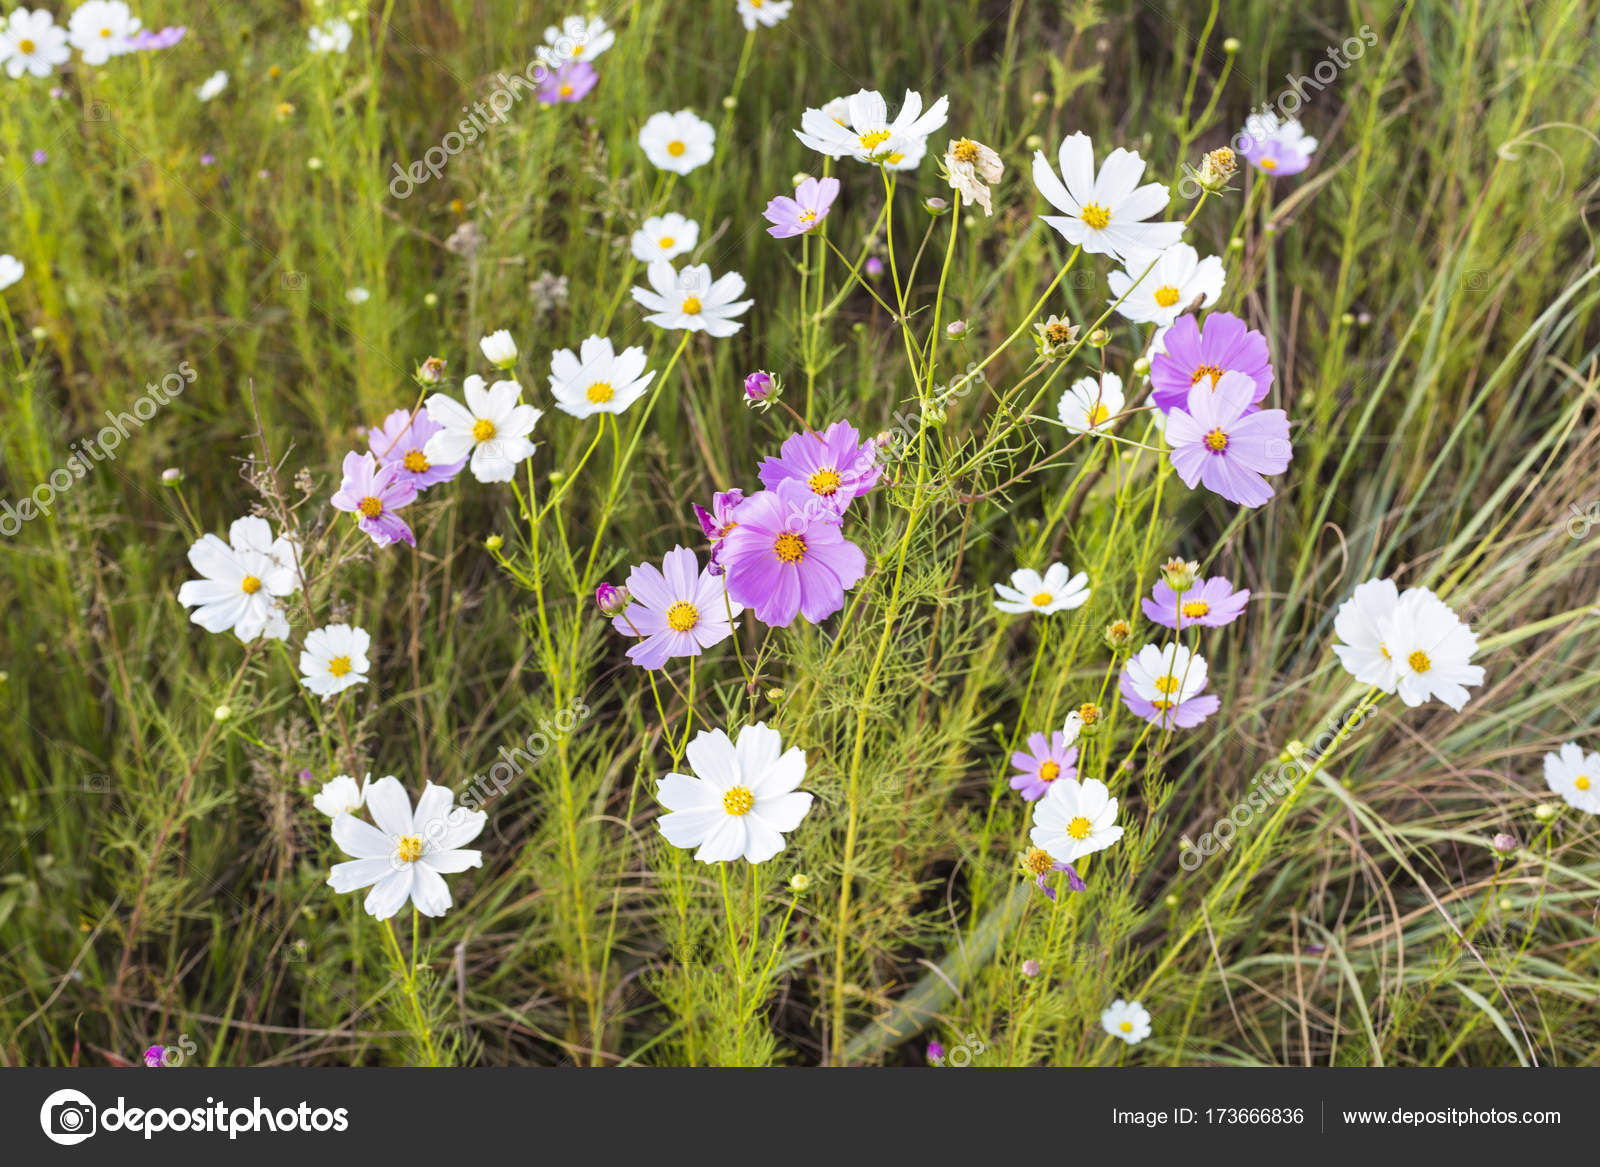 Pink and white cosmos flowers stock photo hannesthirion 173666836 pink and white cosmos flowers stock photo mightylinksfo